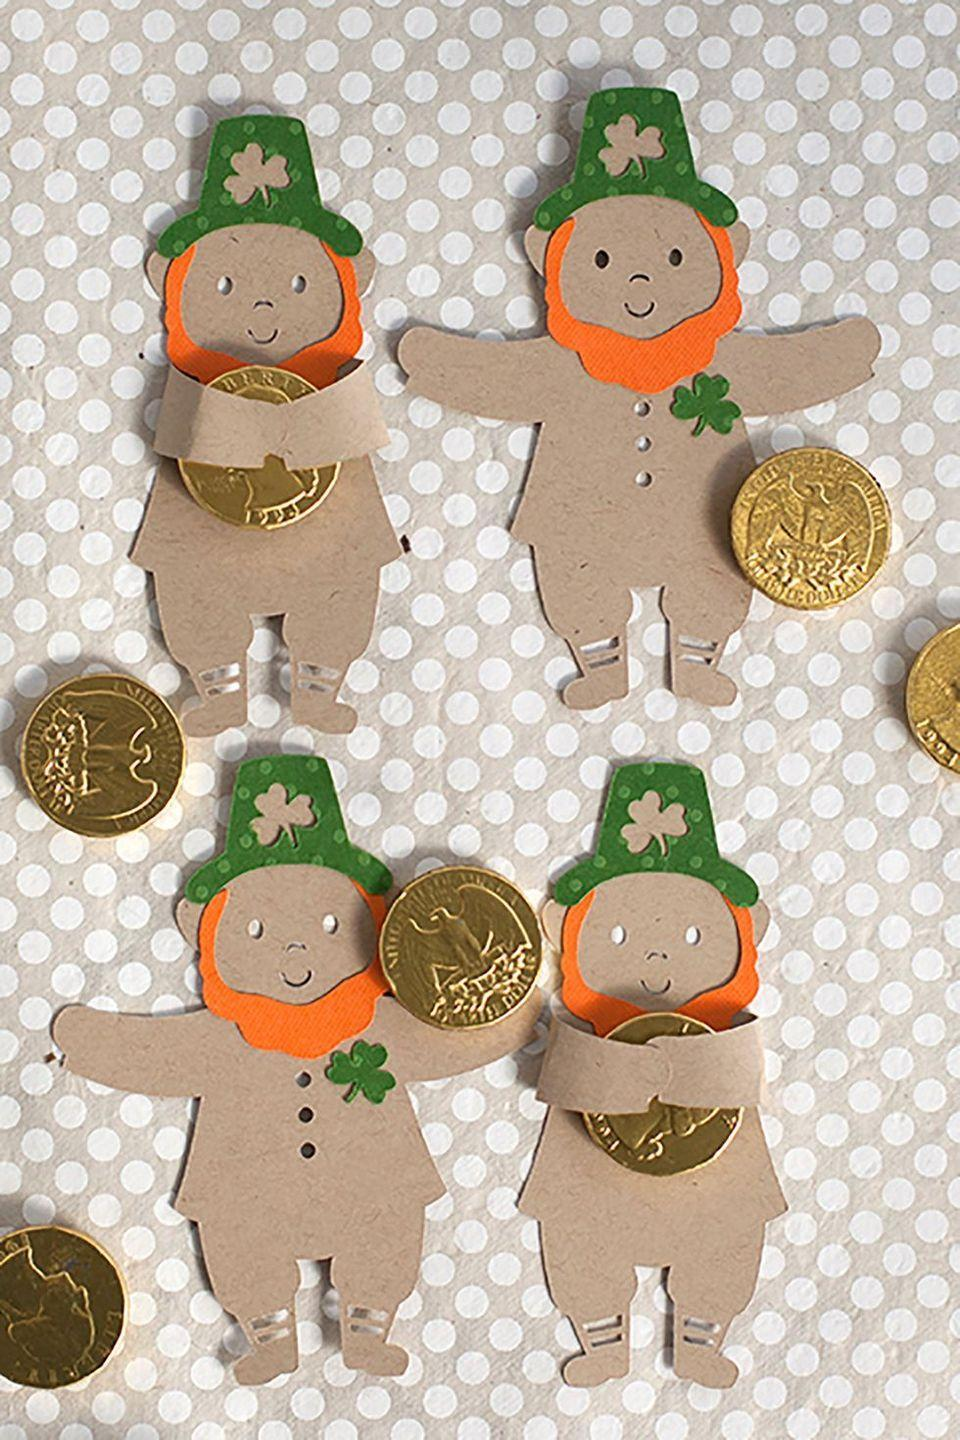 """<p>These adorable paper leprechauns are perfect for hugging gold coins, and inspiring some hugs from your little ones, too. </p><p><em>Get the tutorial at<a href=""""https://liagriffith.com/st-patricks-day-crafts-leprechaun-candy-hugger/?sscid=21k4_fvpv4"""" rel=""""nofollow noopener"""" target=""""_blank"""" data-ylk=""""slk:Lisa Griffith"""" class=""""link rapid-noclick-resp""""> Lisa Griffith</a>. </em></p>"""